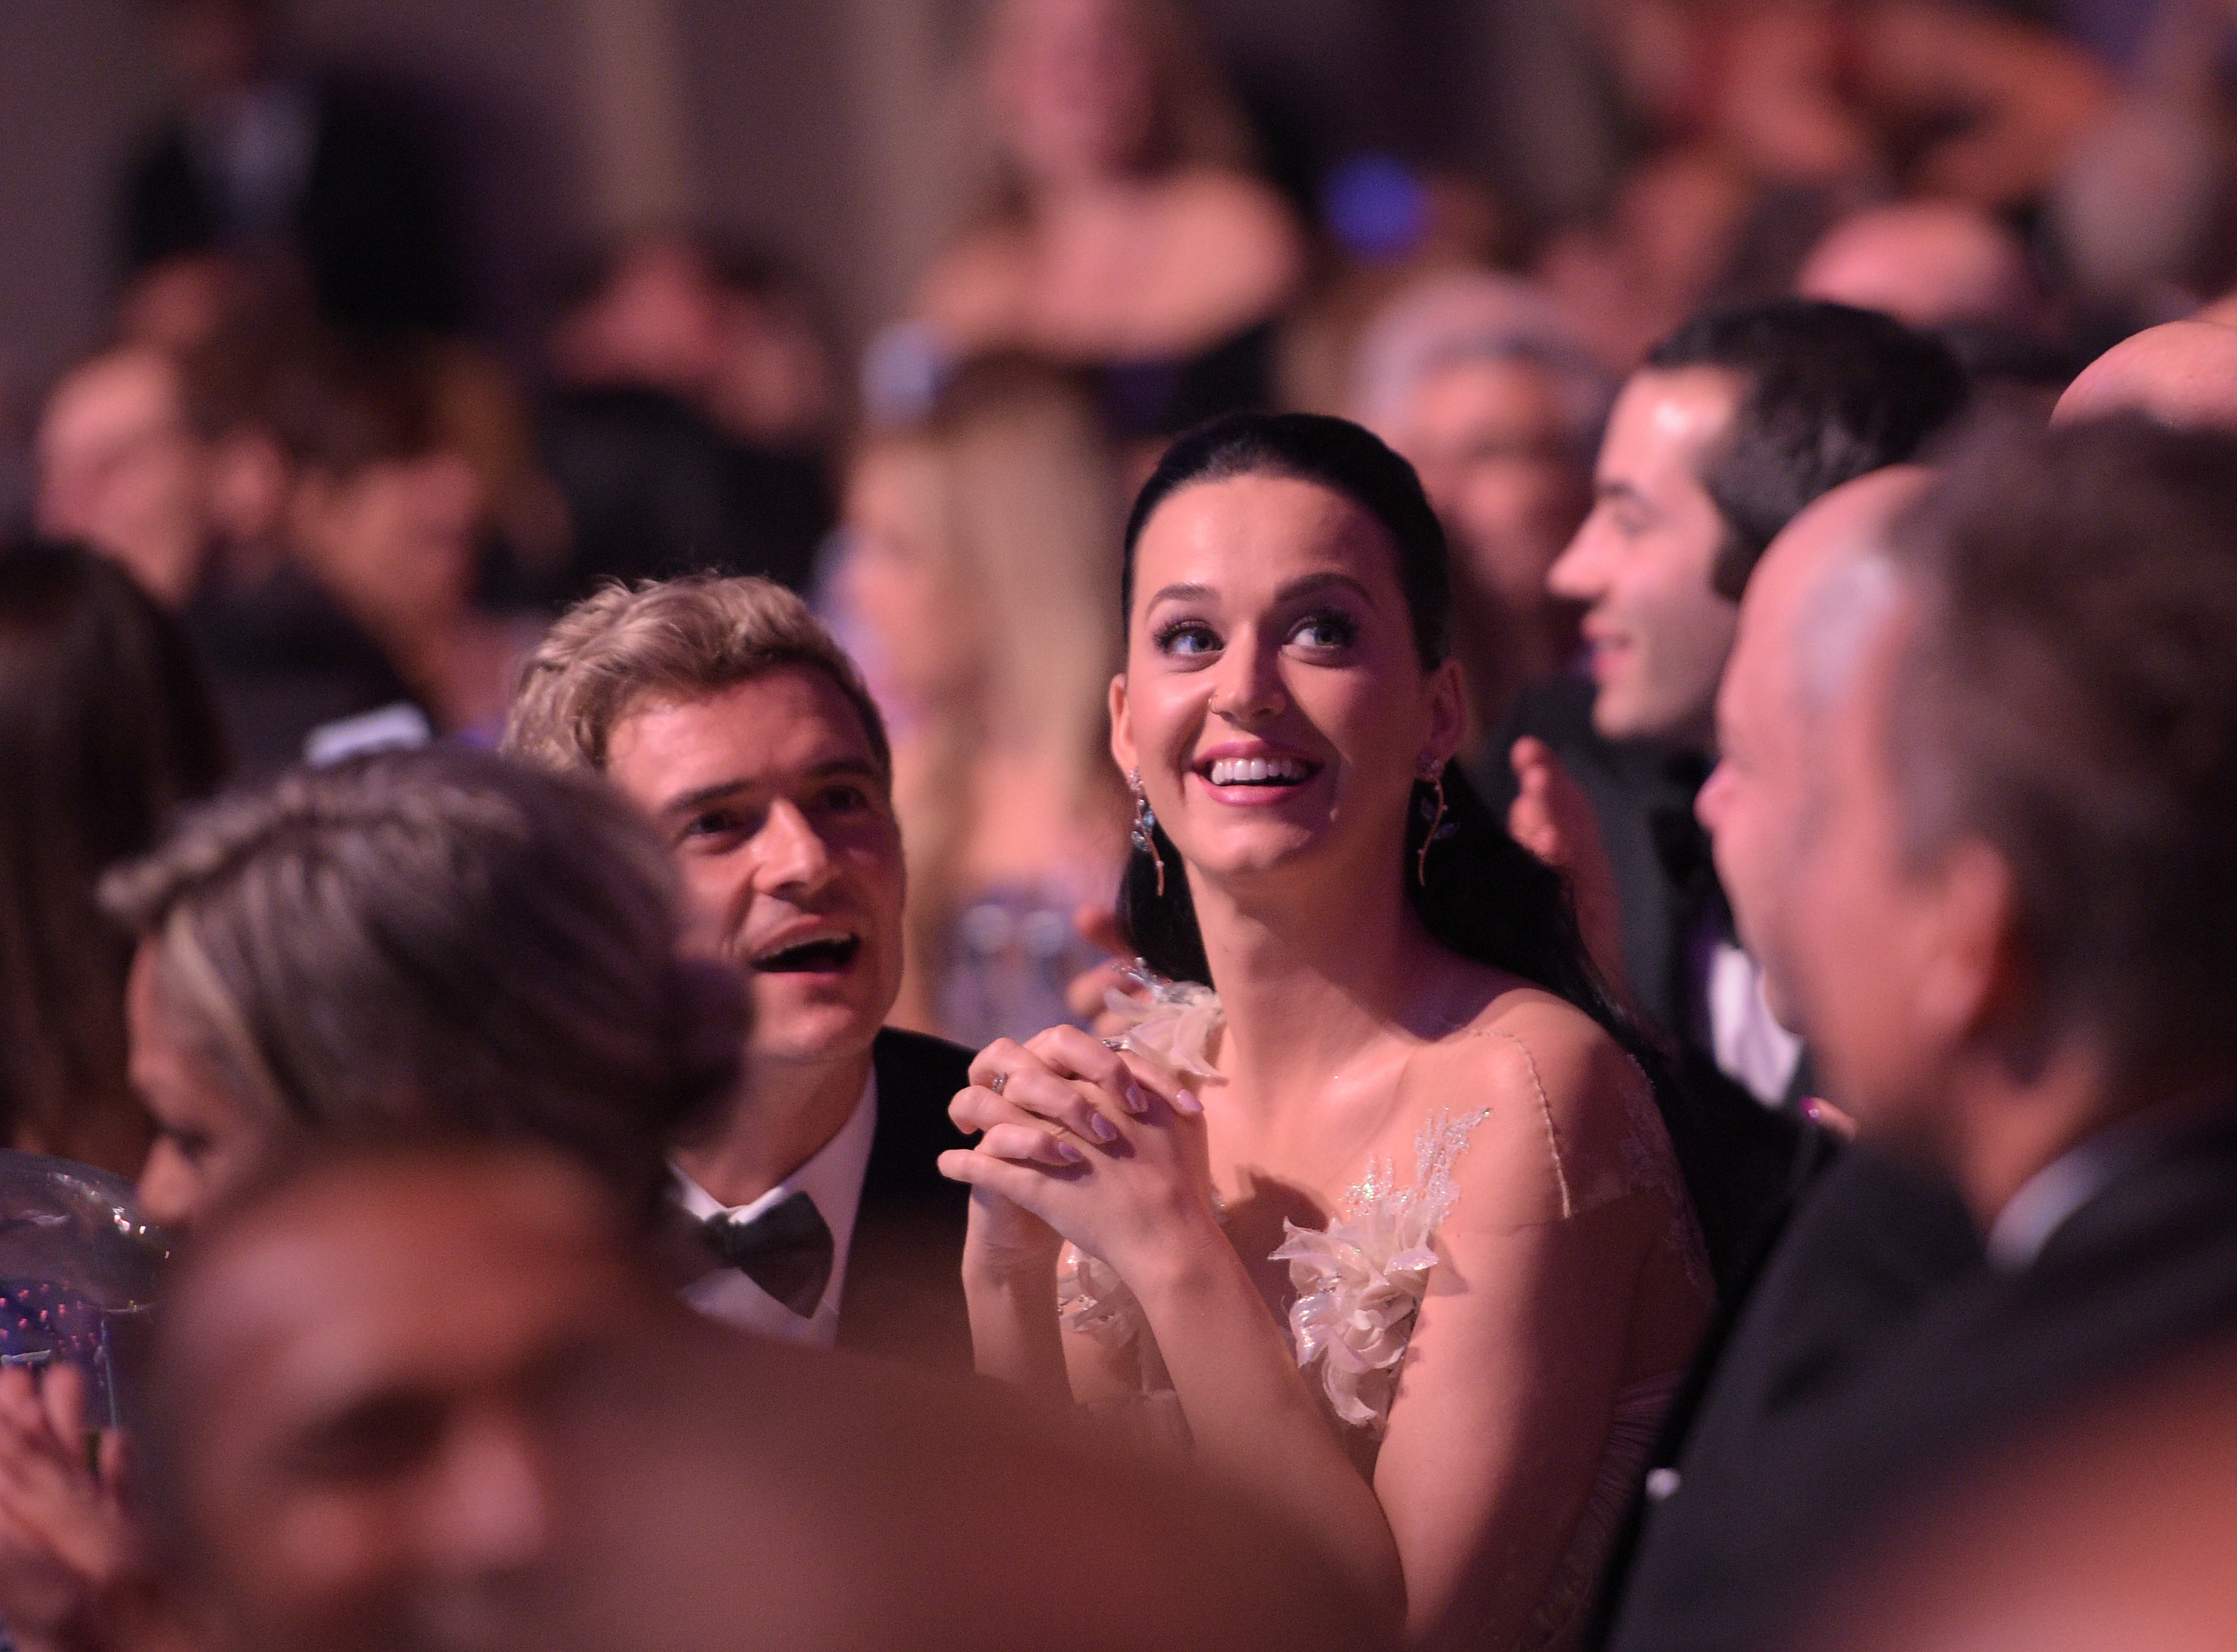 Katy Perry & Orlando Bloom at UNICEF Awards